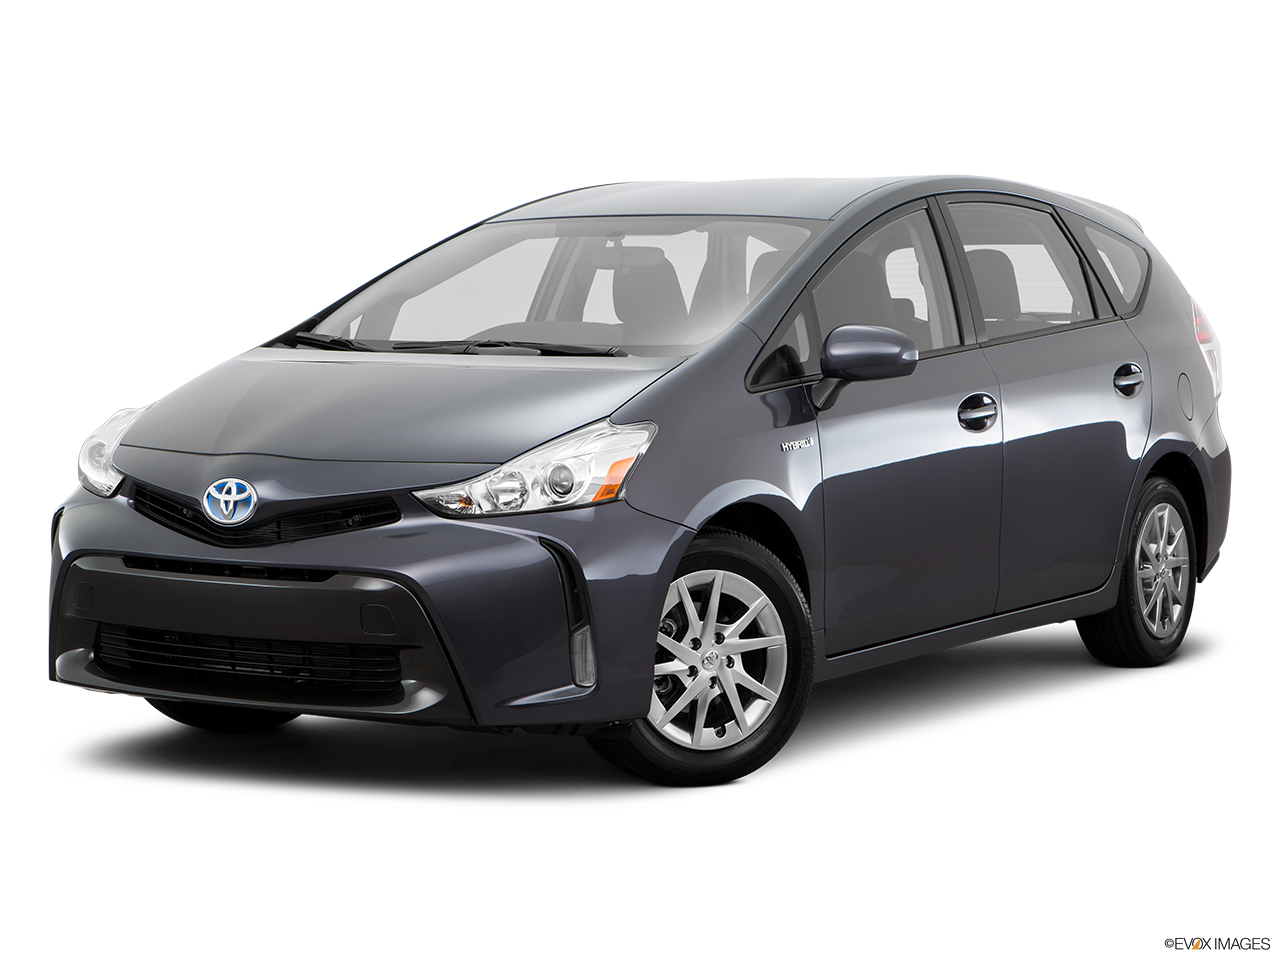 Test Drive A 2016 Toyota Prius V at Tustin Toyota in Tustin